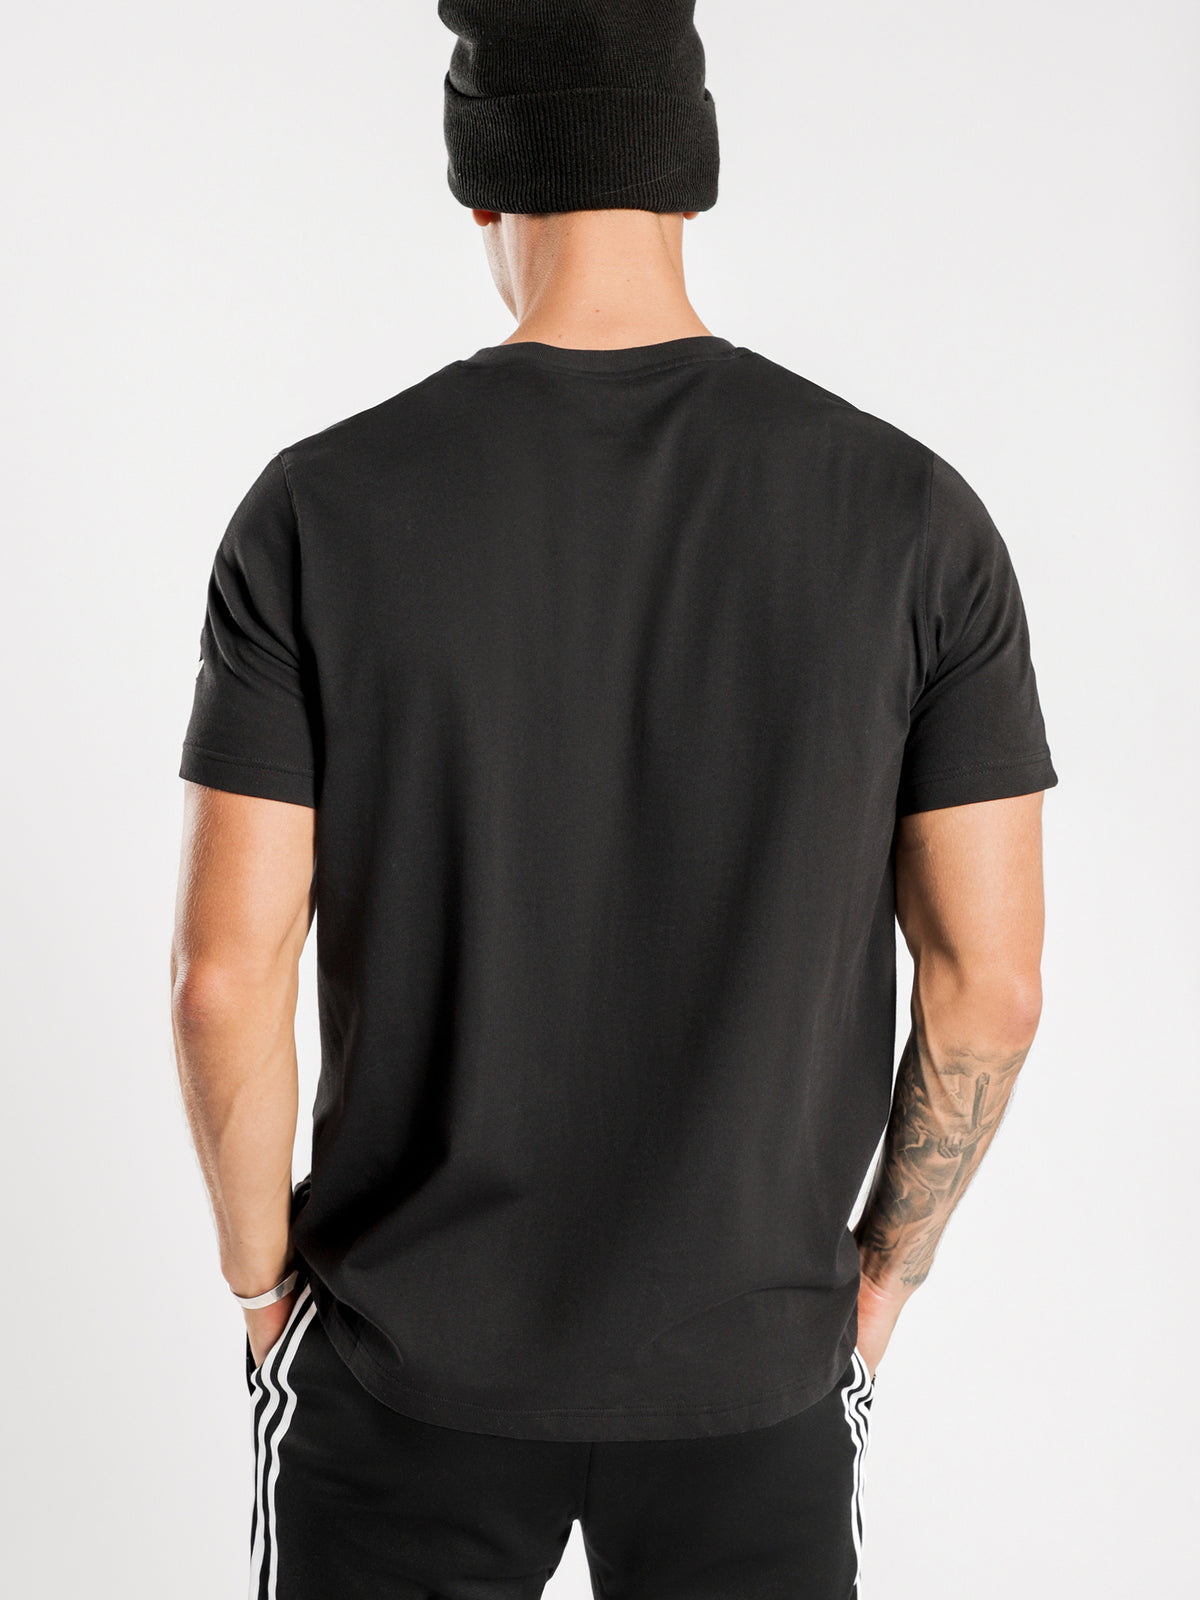 New Icon T-Shirt in Black